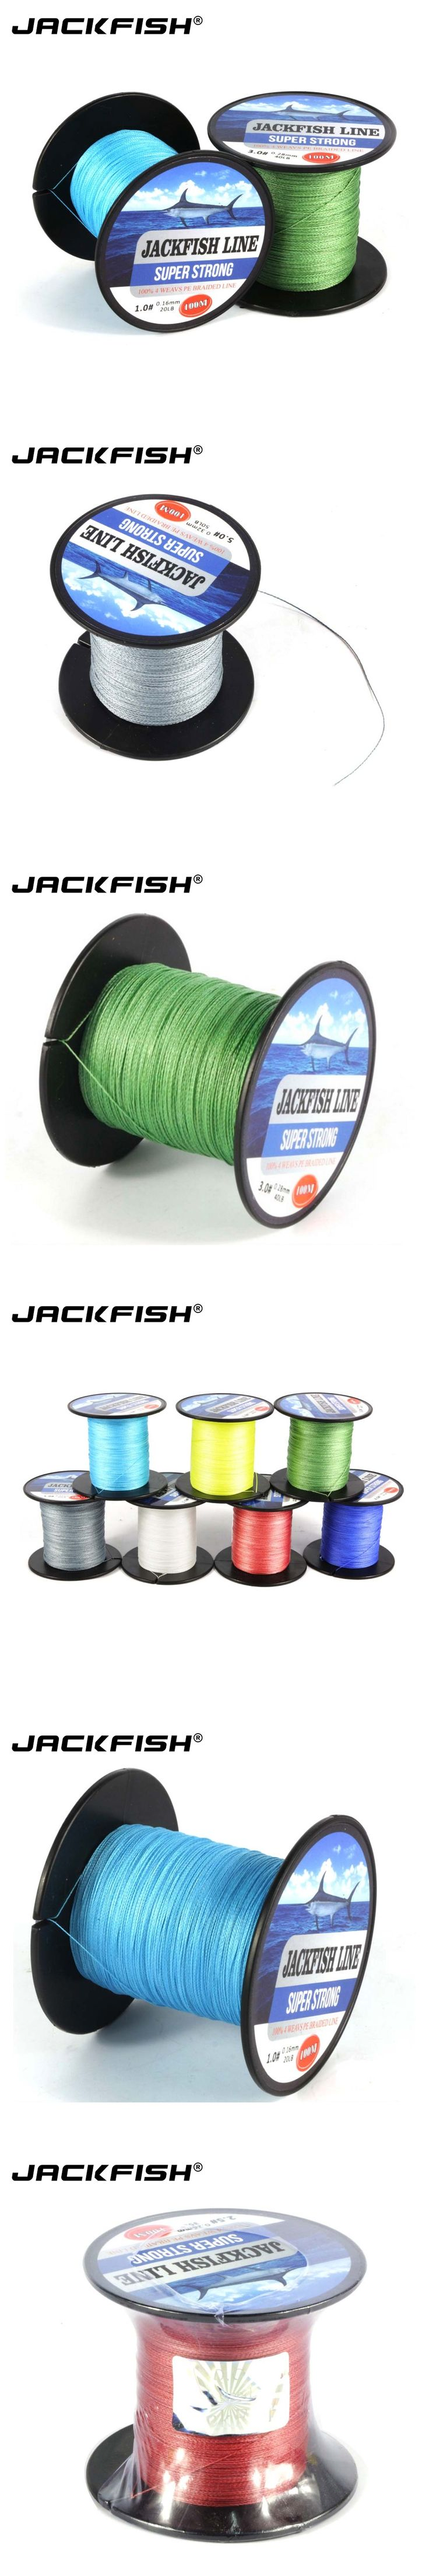 JACKFISH 4 strand 100M PE Braided Fishing Line 10-80LB 7Color Multifilament Fishing Line black Wire coil  Carp Fishing Saltwater